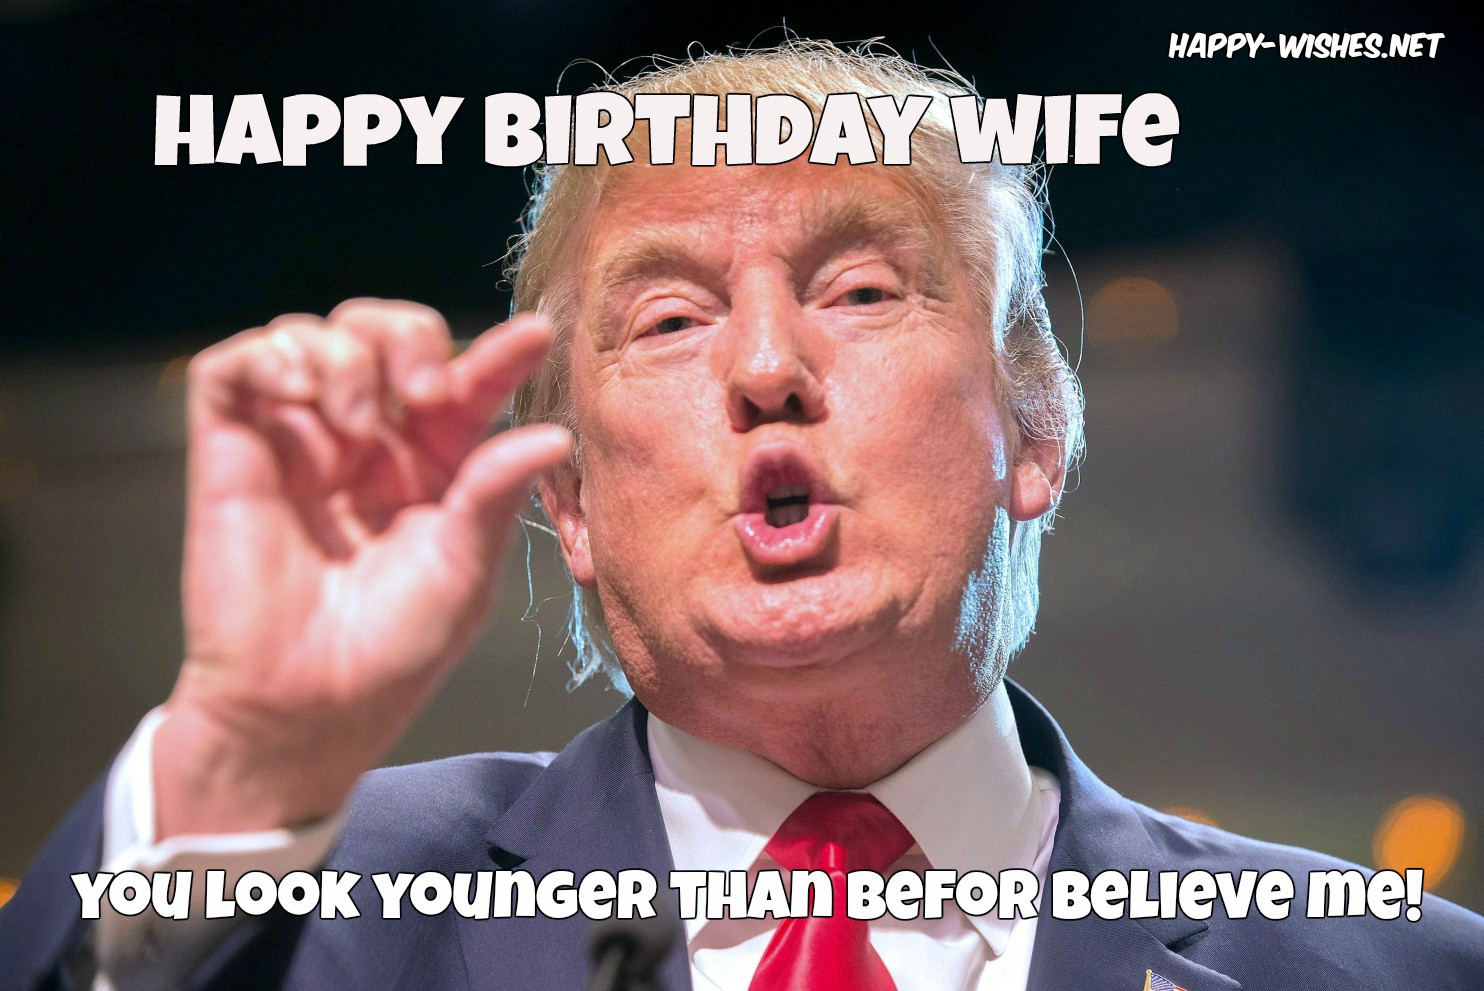 19 Very Funny Wife Birthday Meme Pictures Images Memesboy